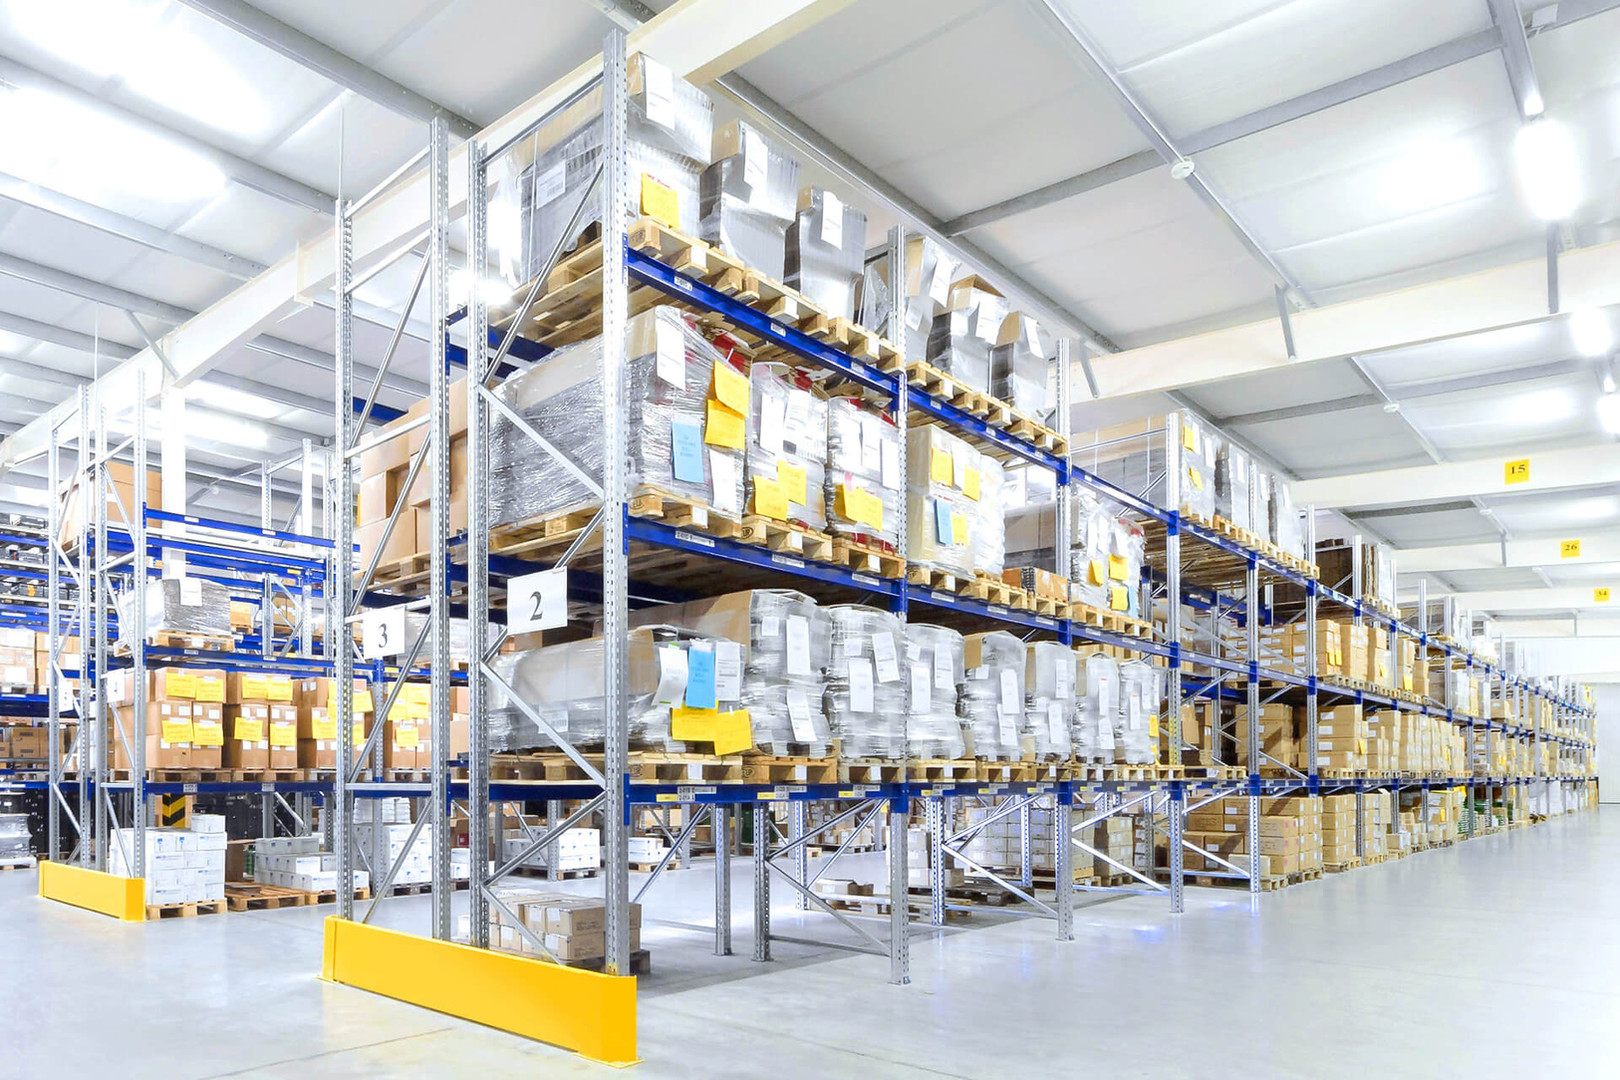 Industry-Sector-Warehouse-Logistic-2-Ski